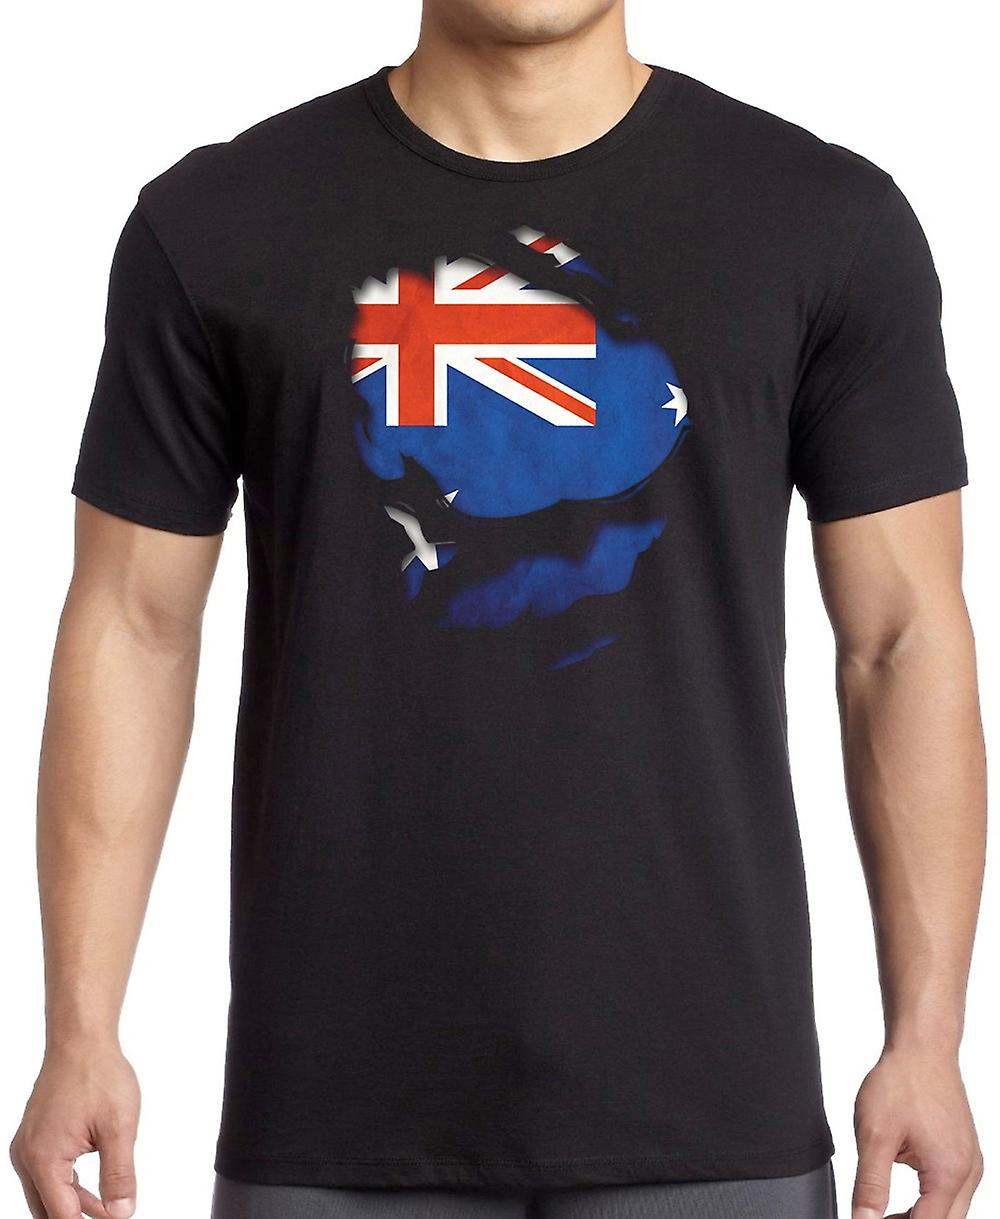 Australia Australia Ripped Effect Under Shirt T Shirt